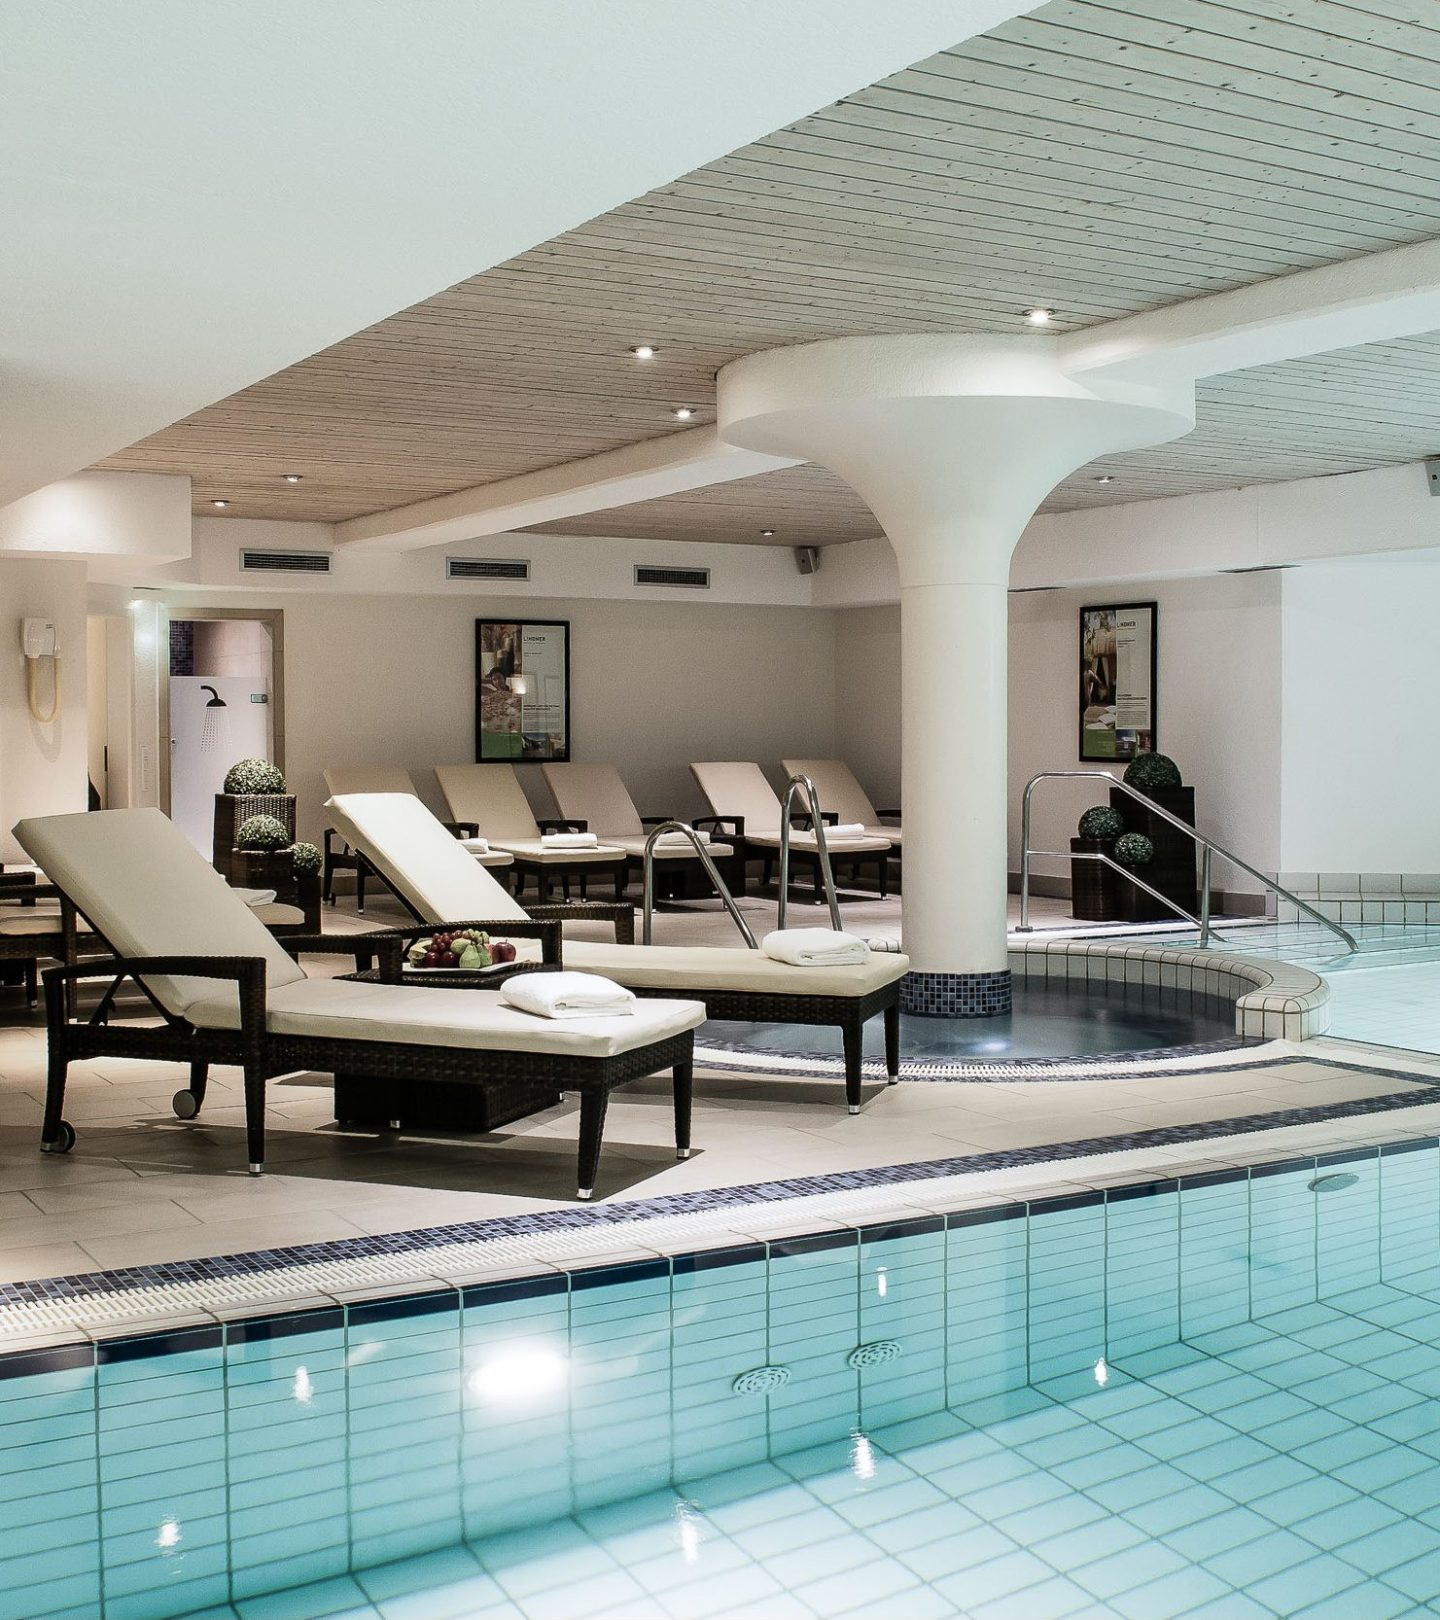 Hotel Windrose Sylt - Poolbereich